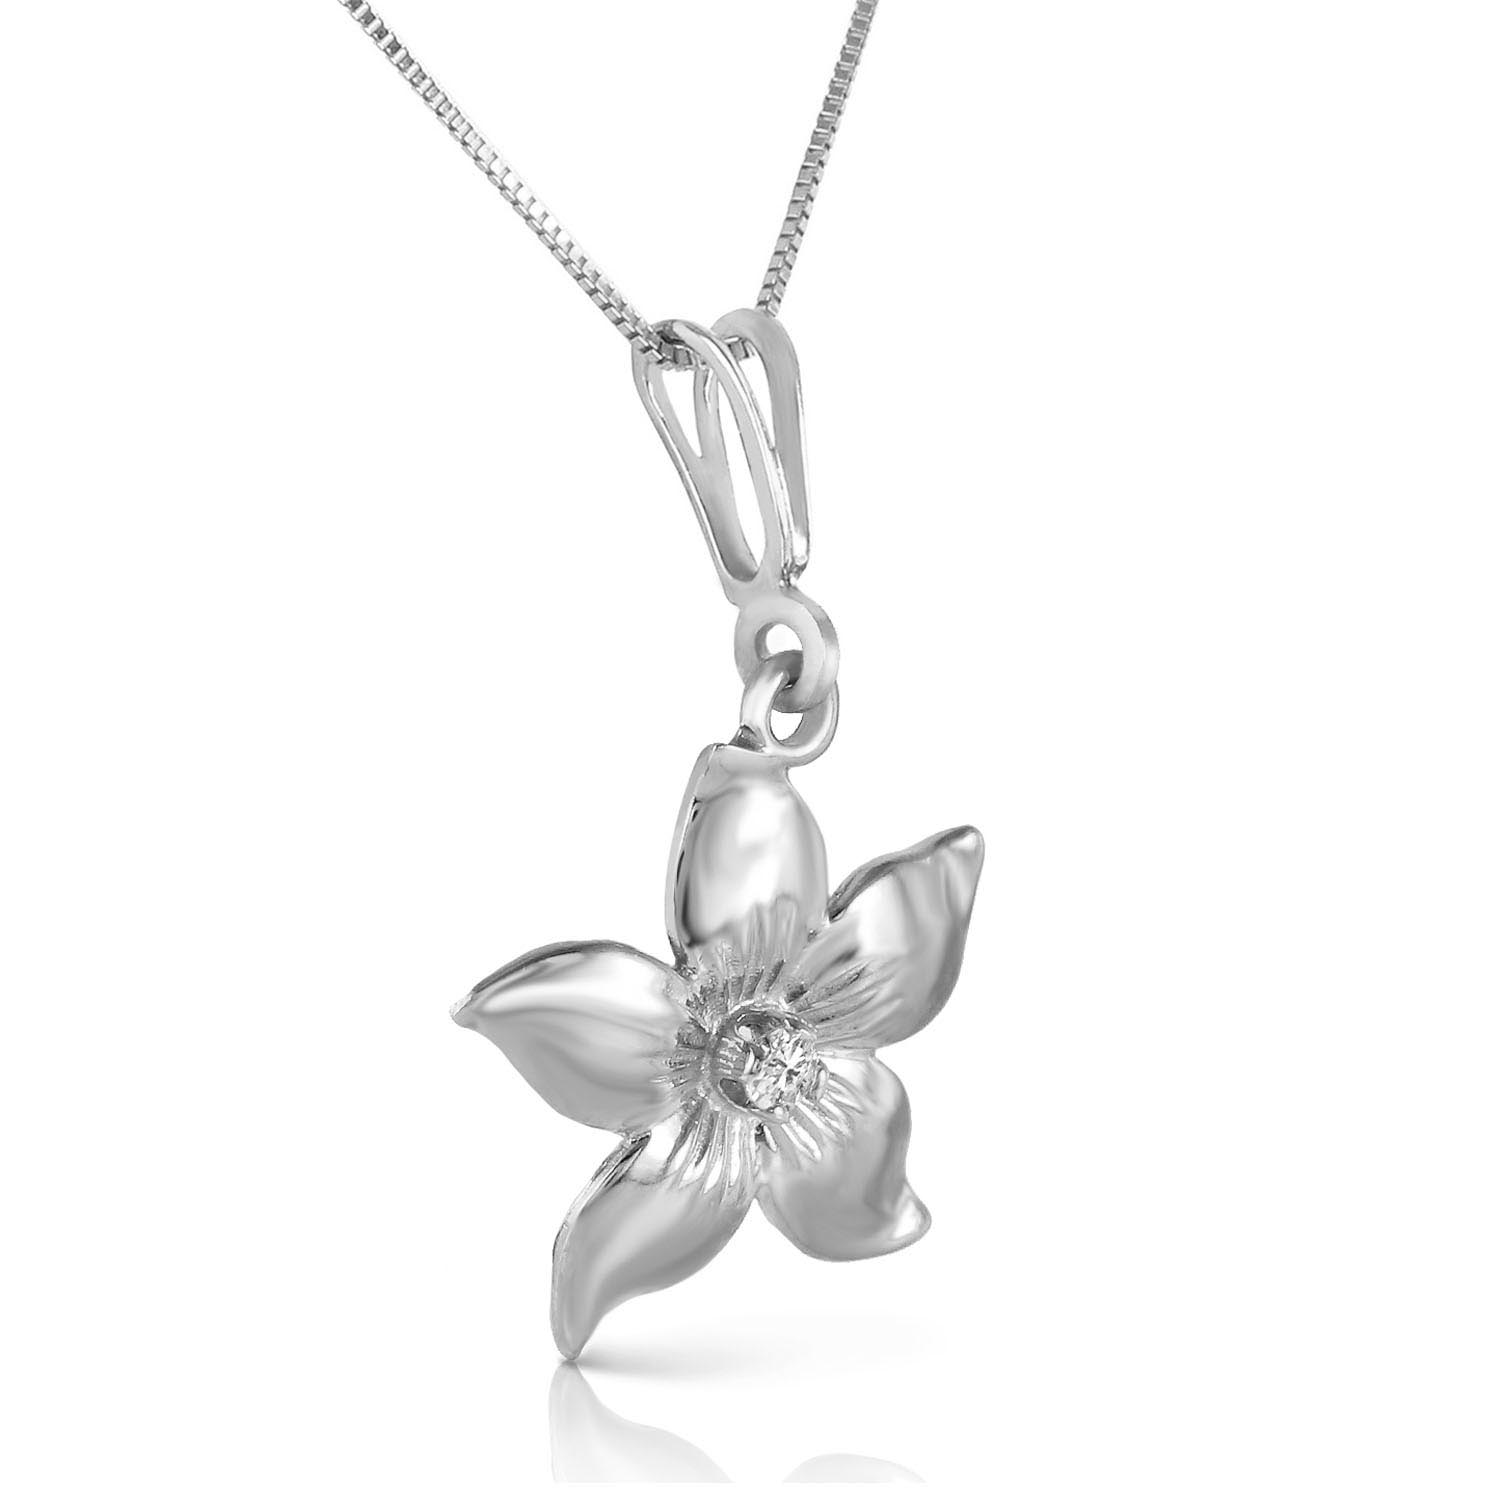 Diamond Flower Petal Pendant Necklace 0.05 ct in 9ct White Gold